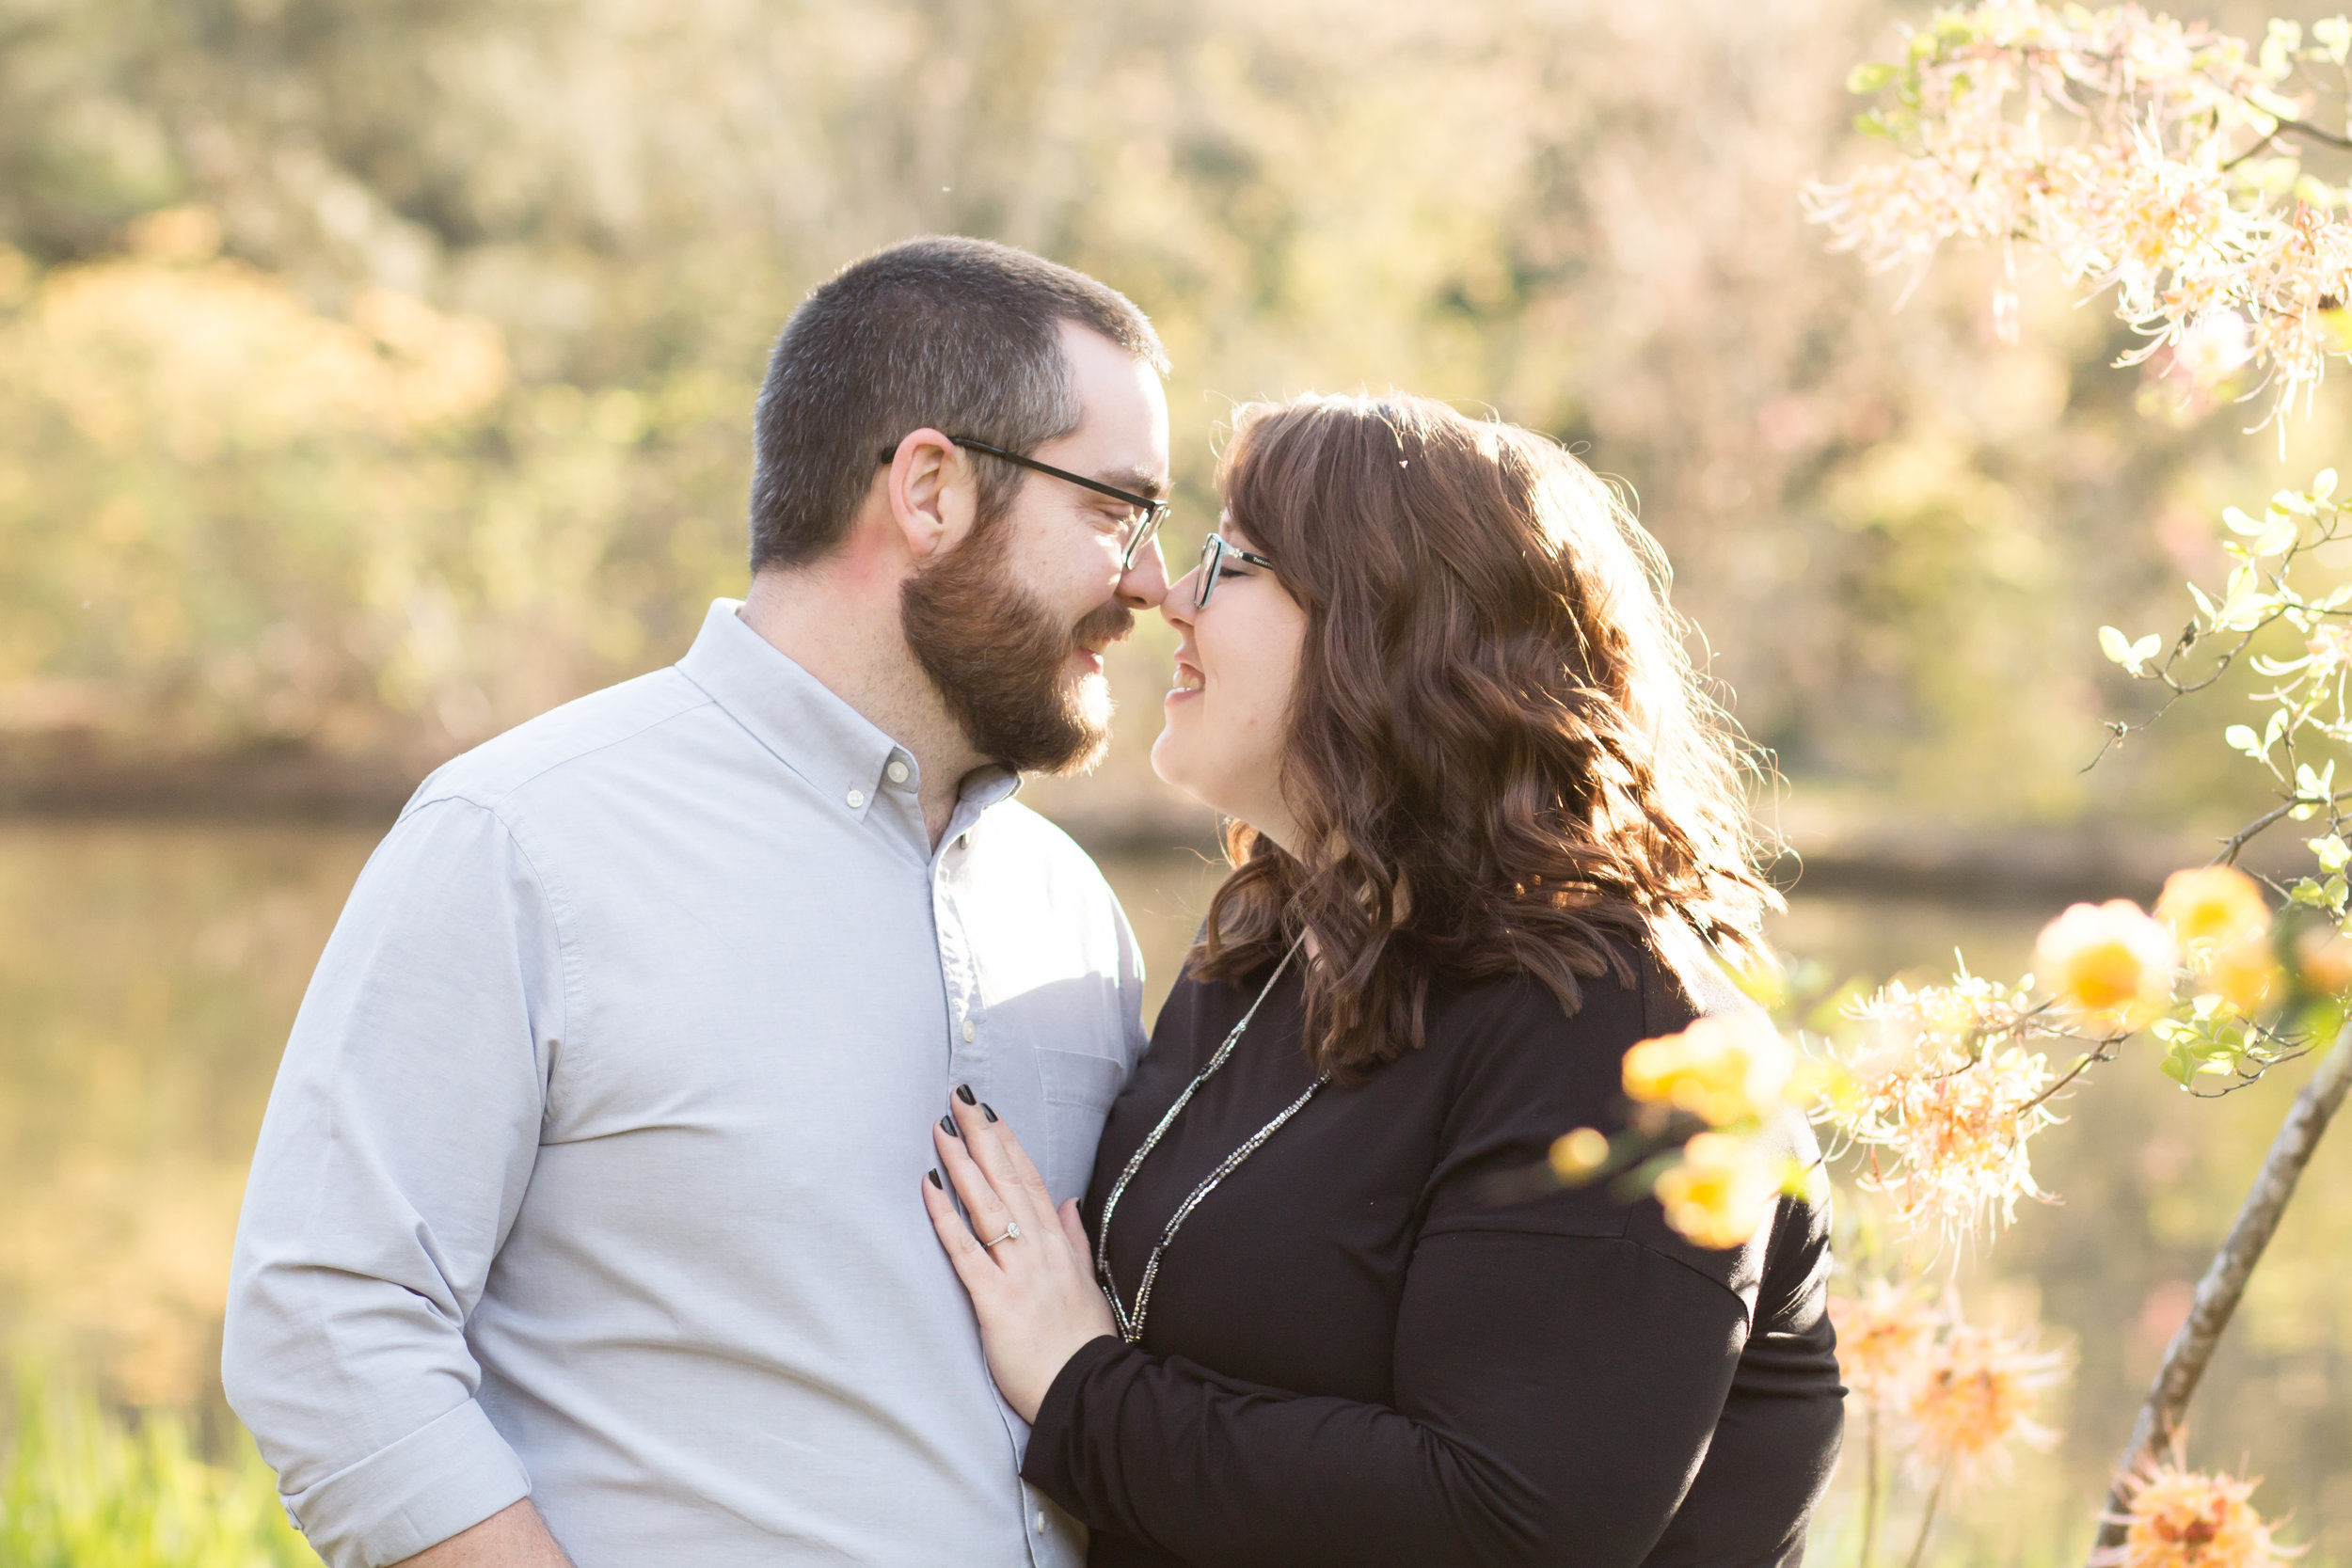 Beth-and-Jeff-engaged-2018-12.jpg